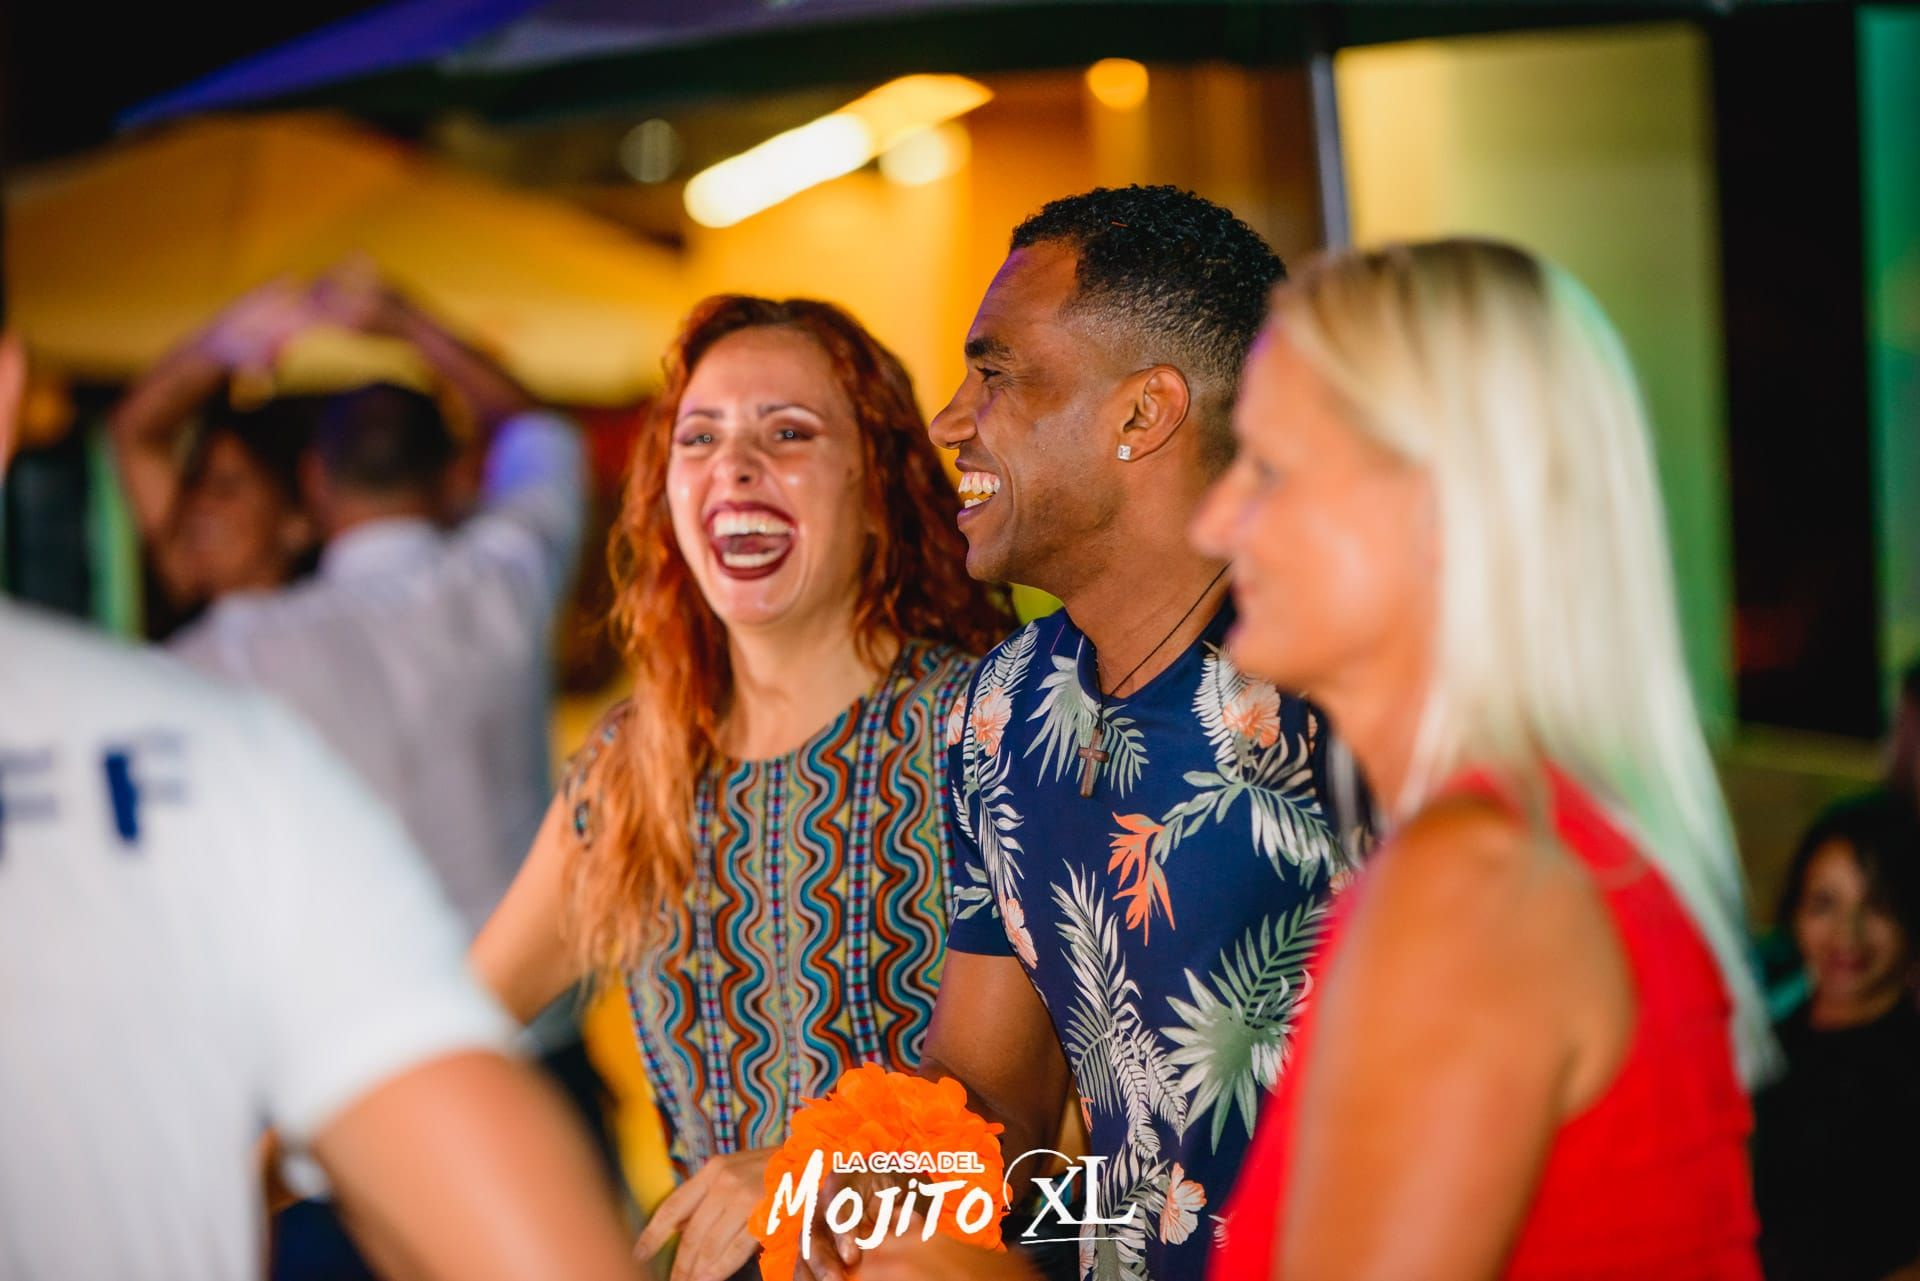 A night out in los Cristianos